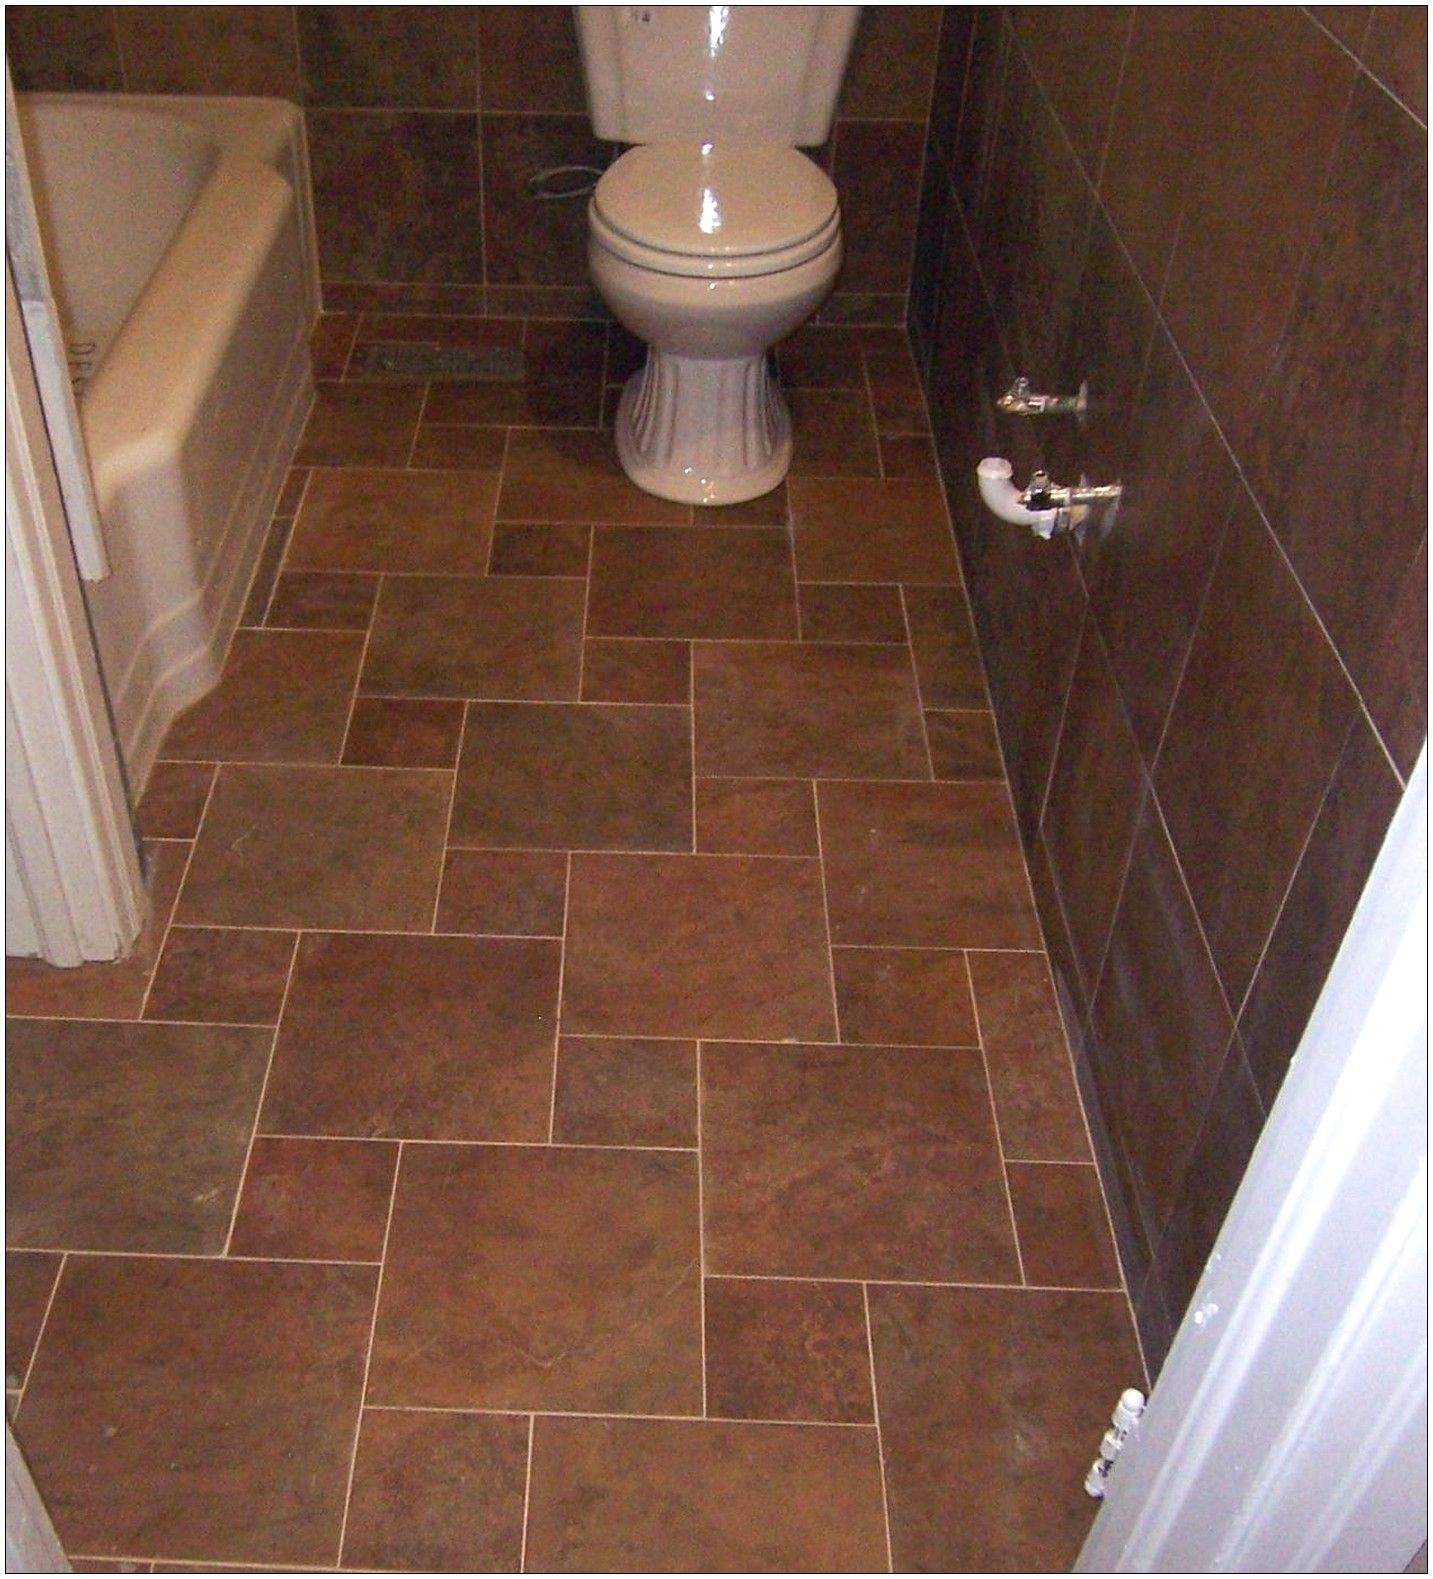 Tile a bathroom floor - Bathroom Floor Tiles For Small Bathrooms